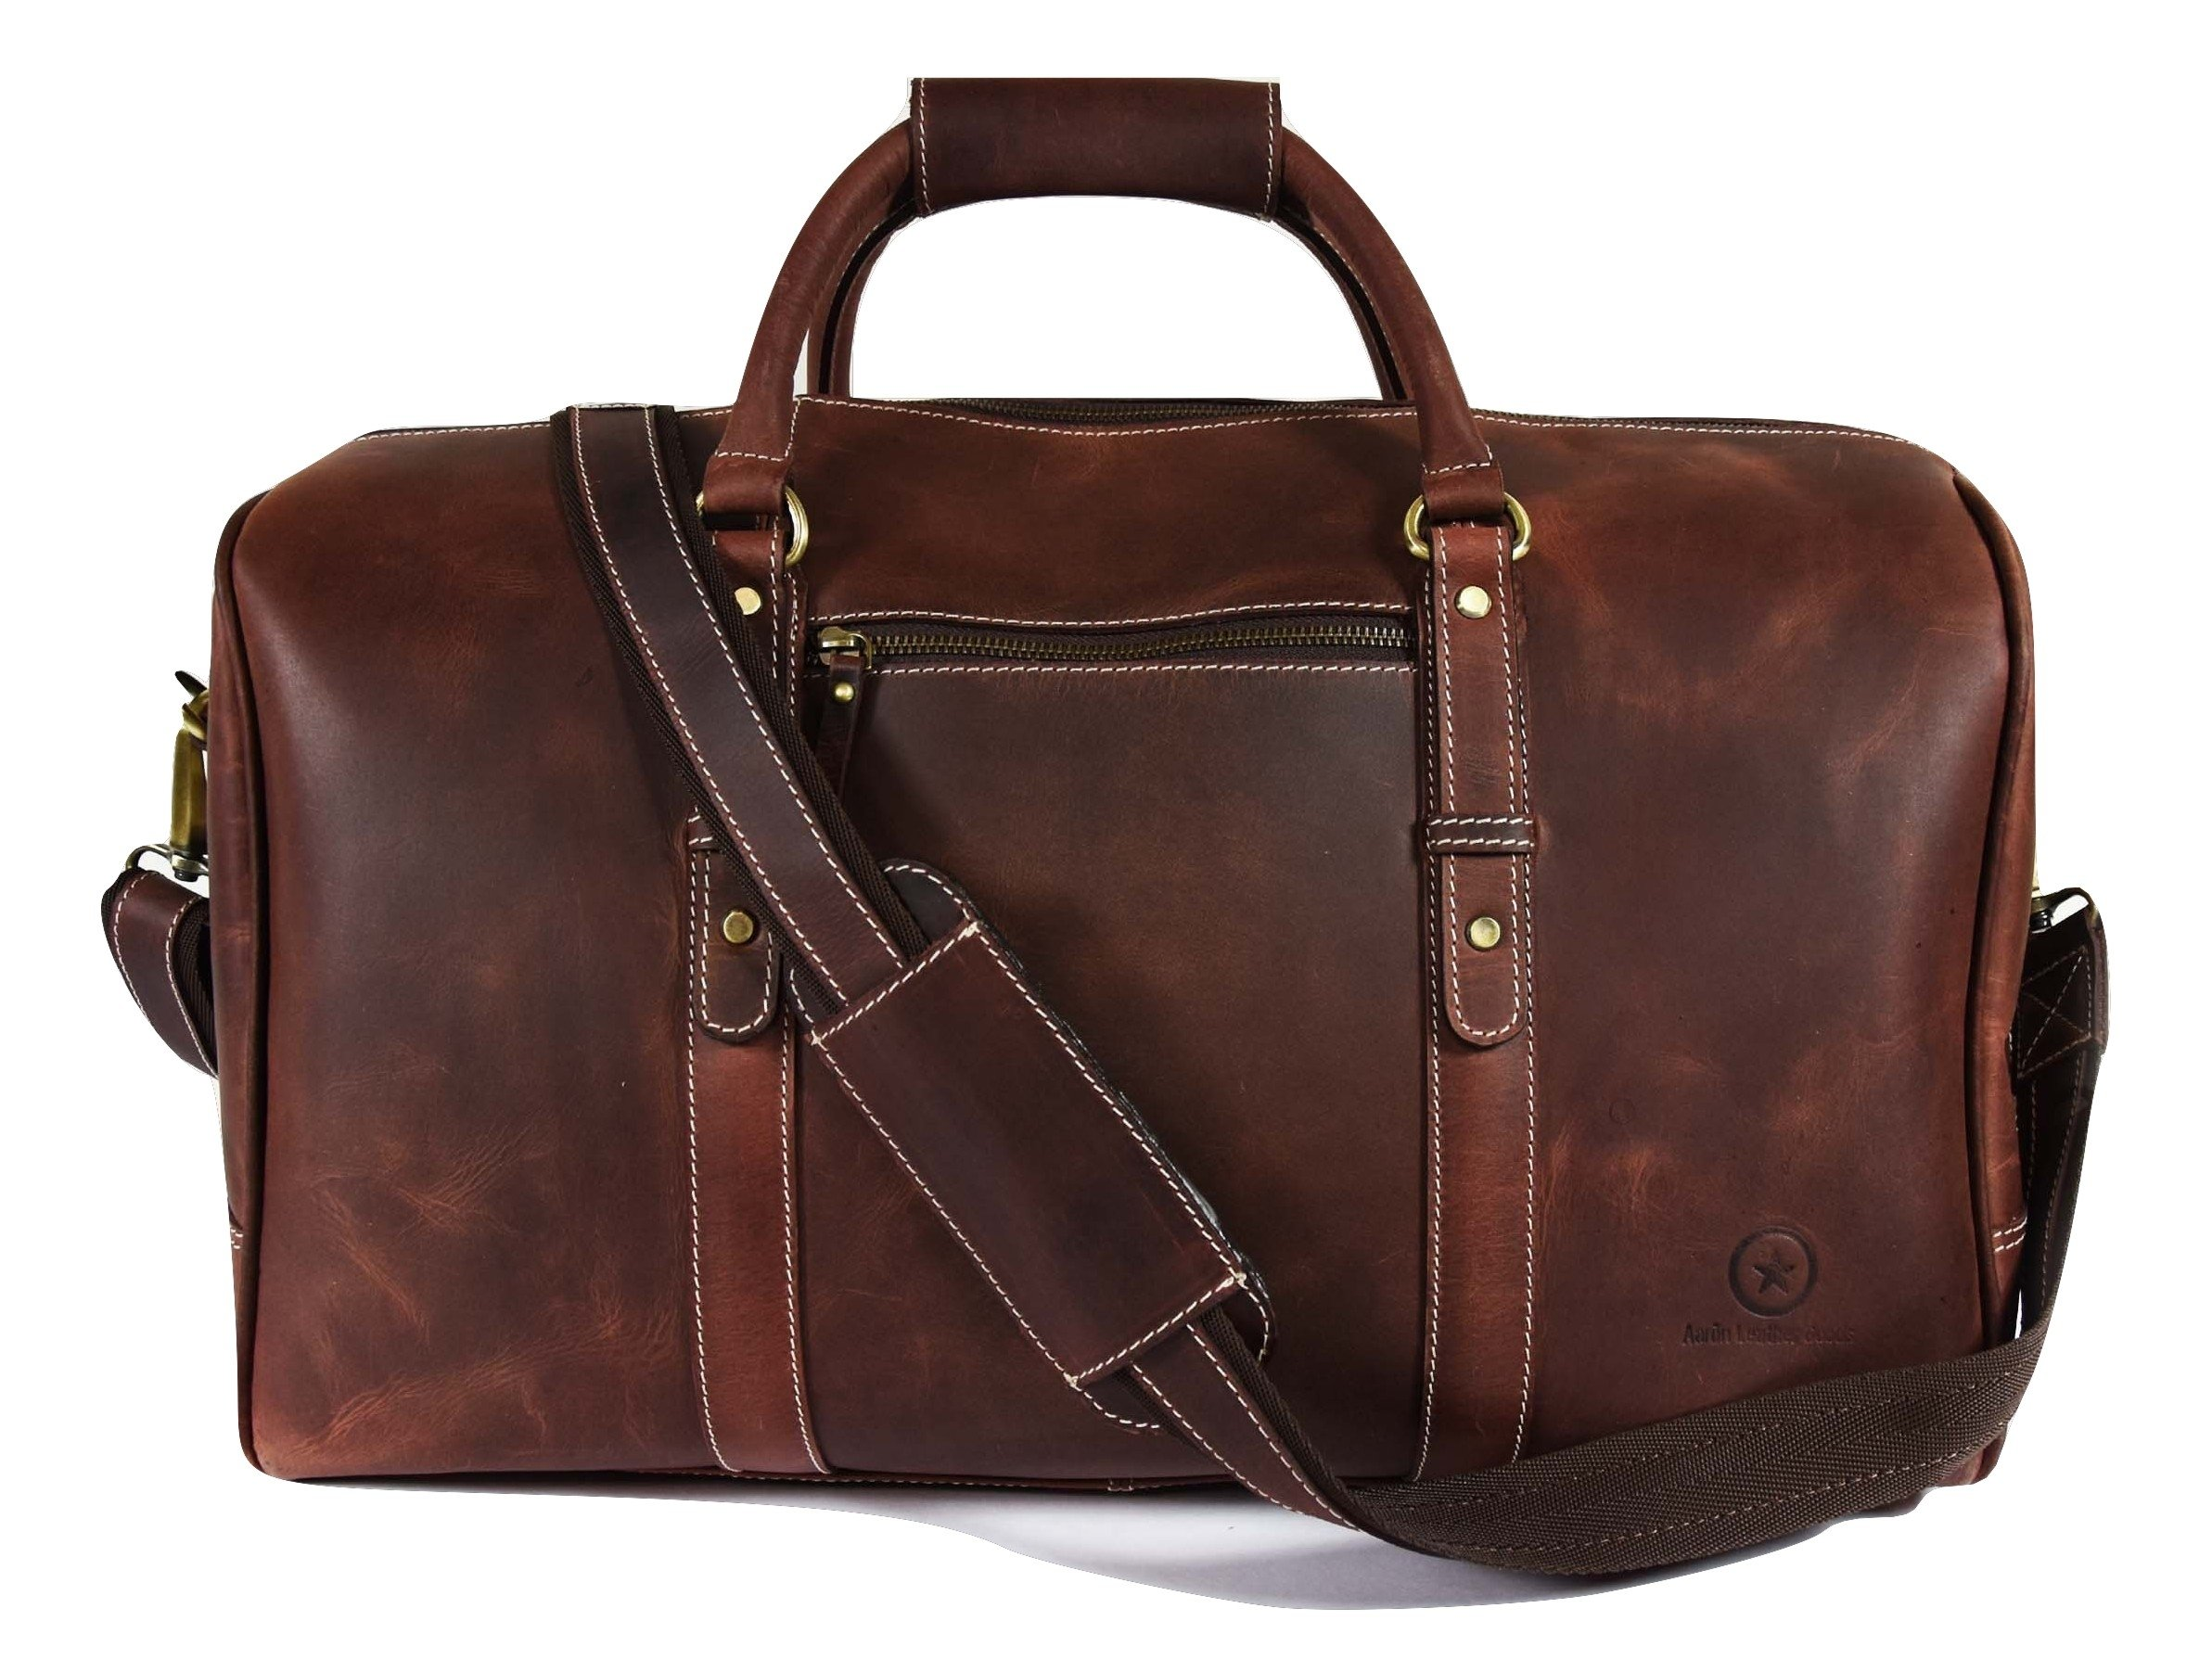 20 Inch Leather Travel Duffle Bag ,Gym Overnight Weekend Bag,By Aaron Leather (Dark Brown)